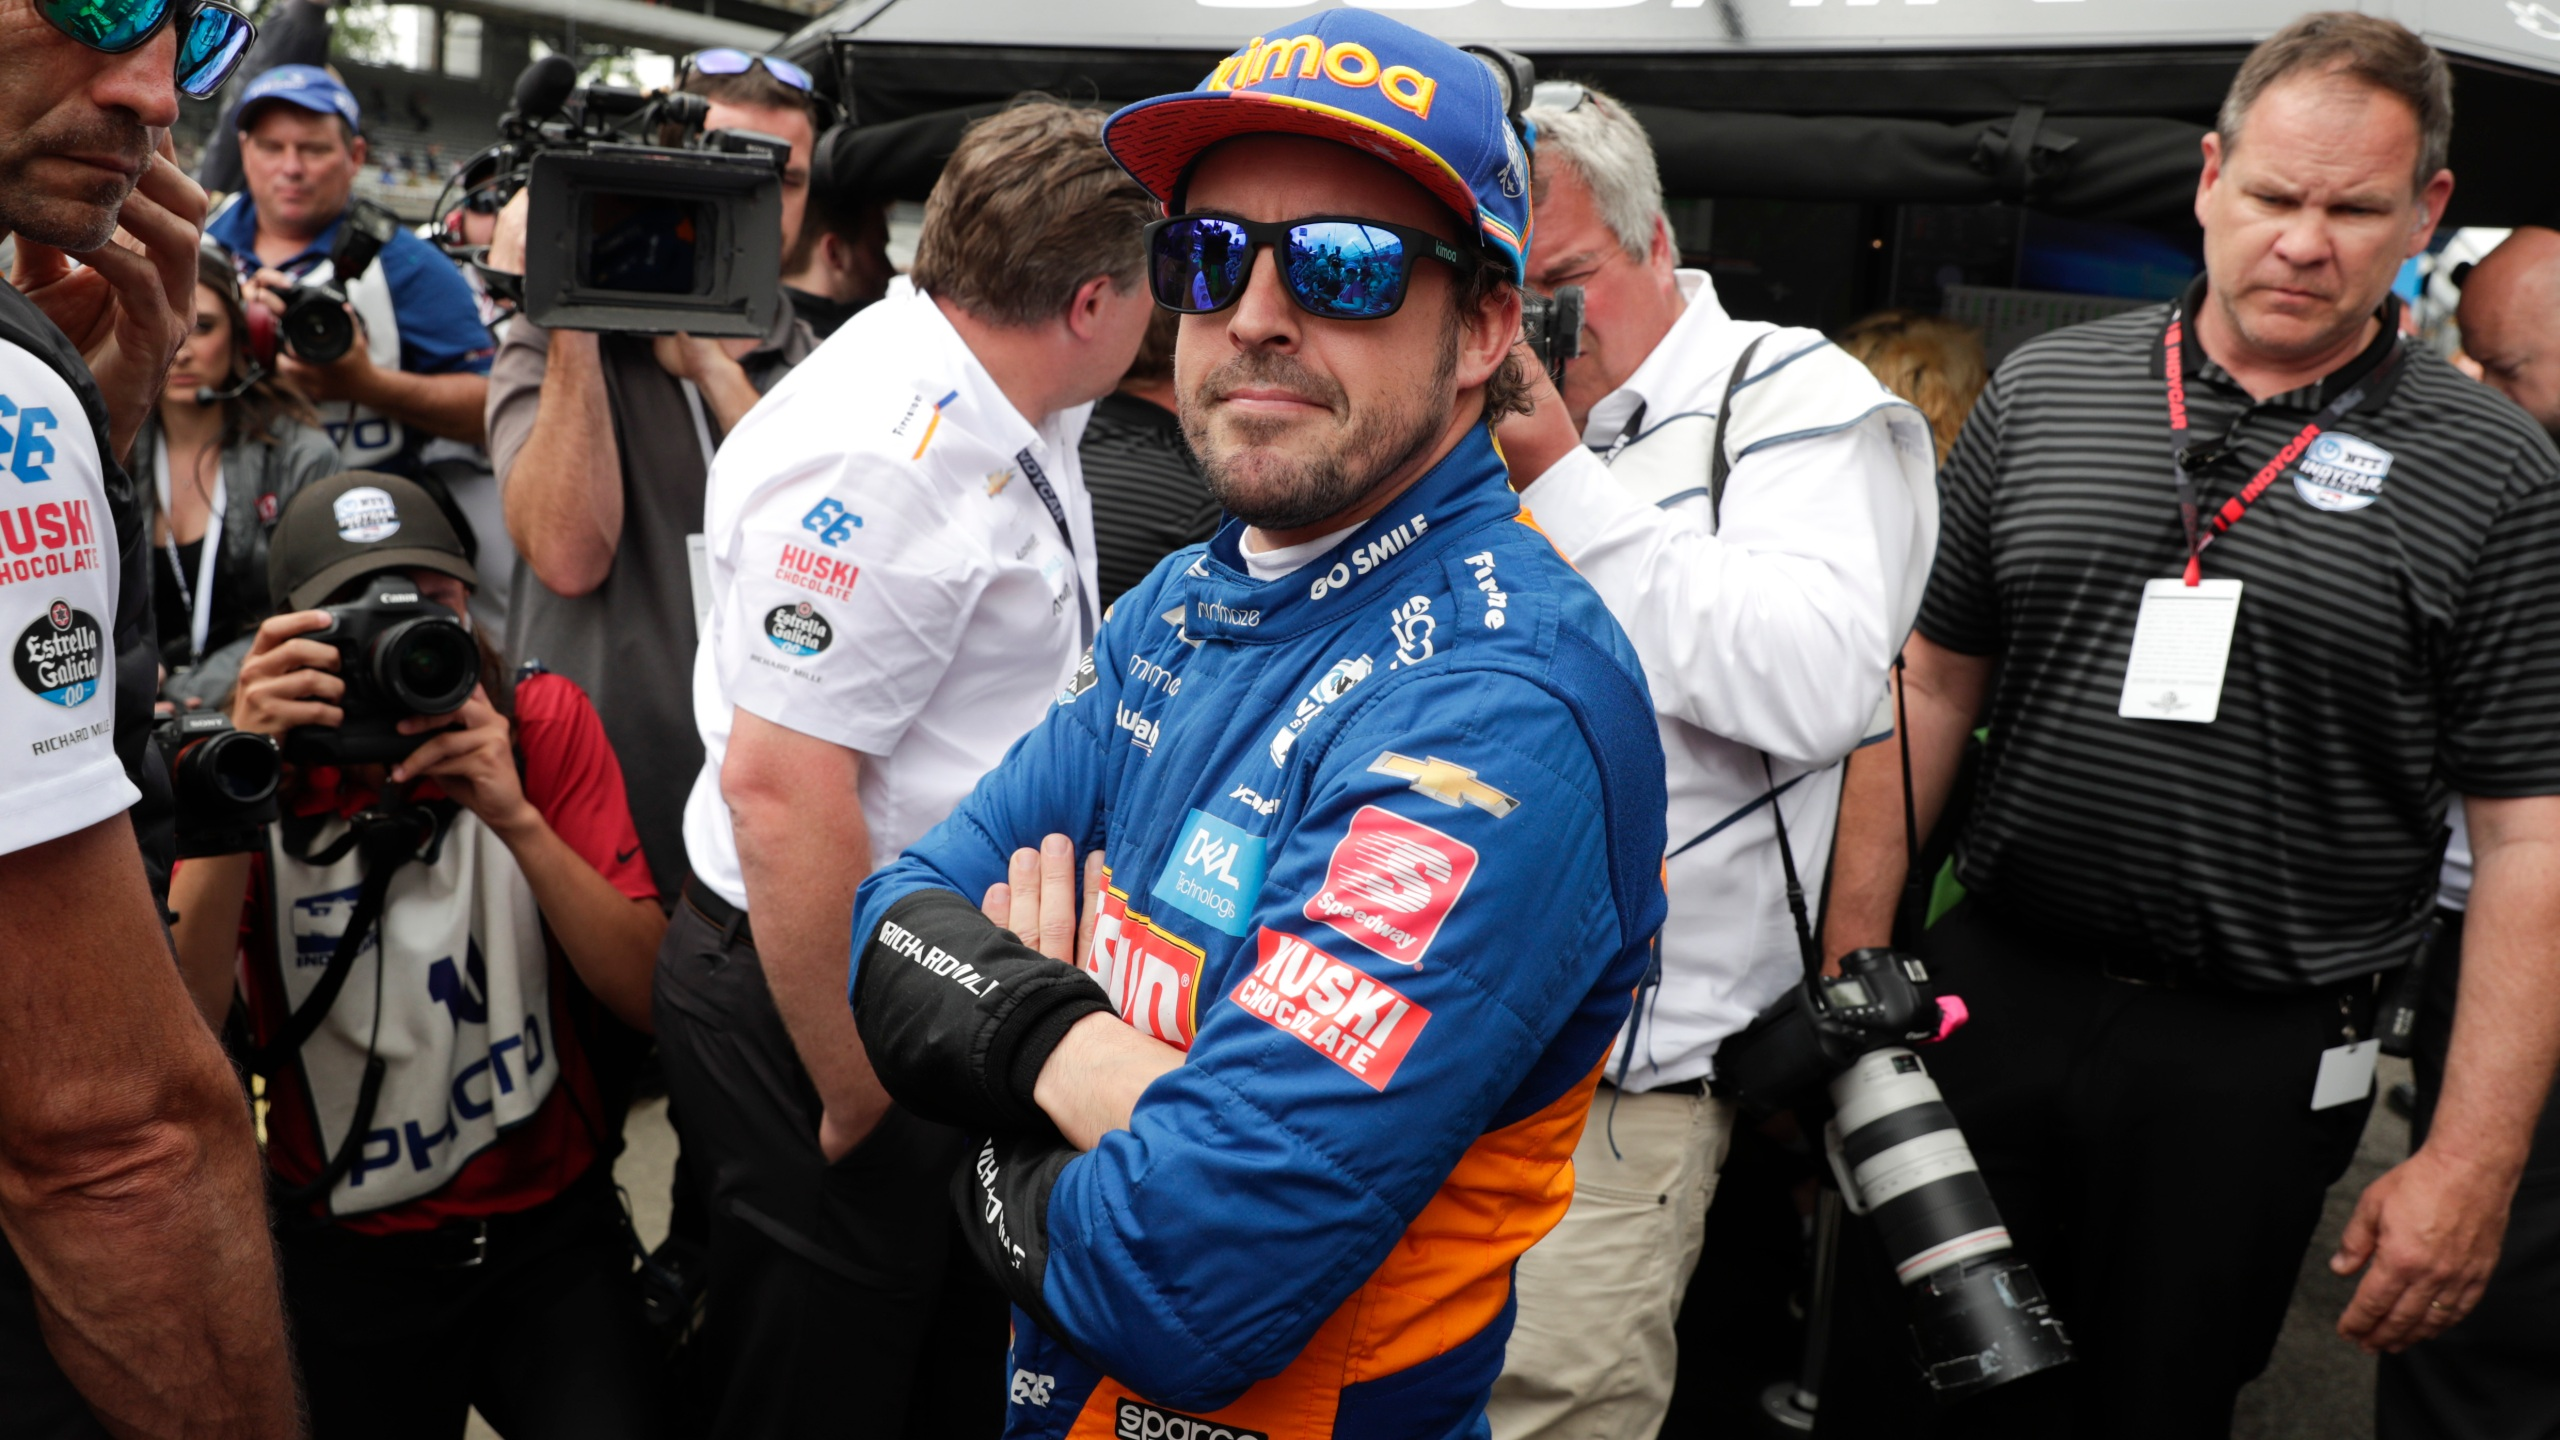 IndyCar Indy 500 Auto Racing_1558381161183